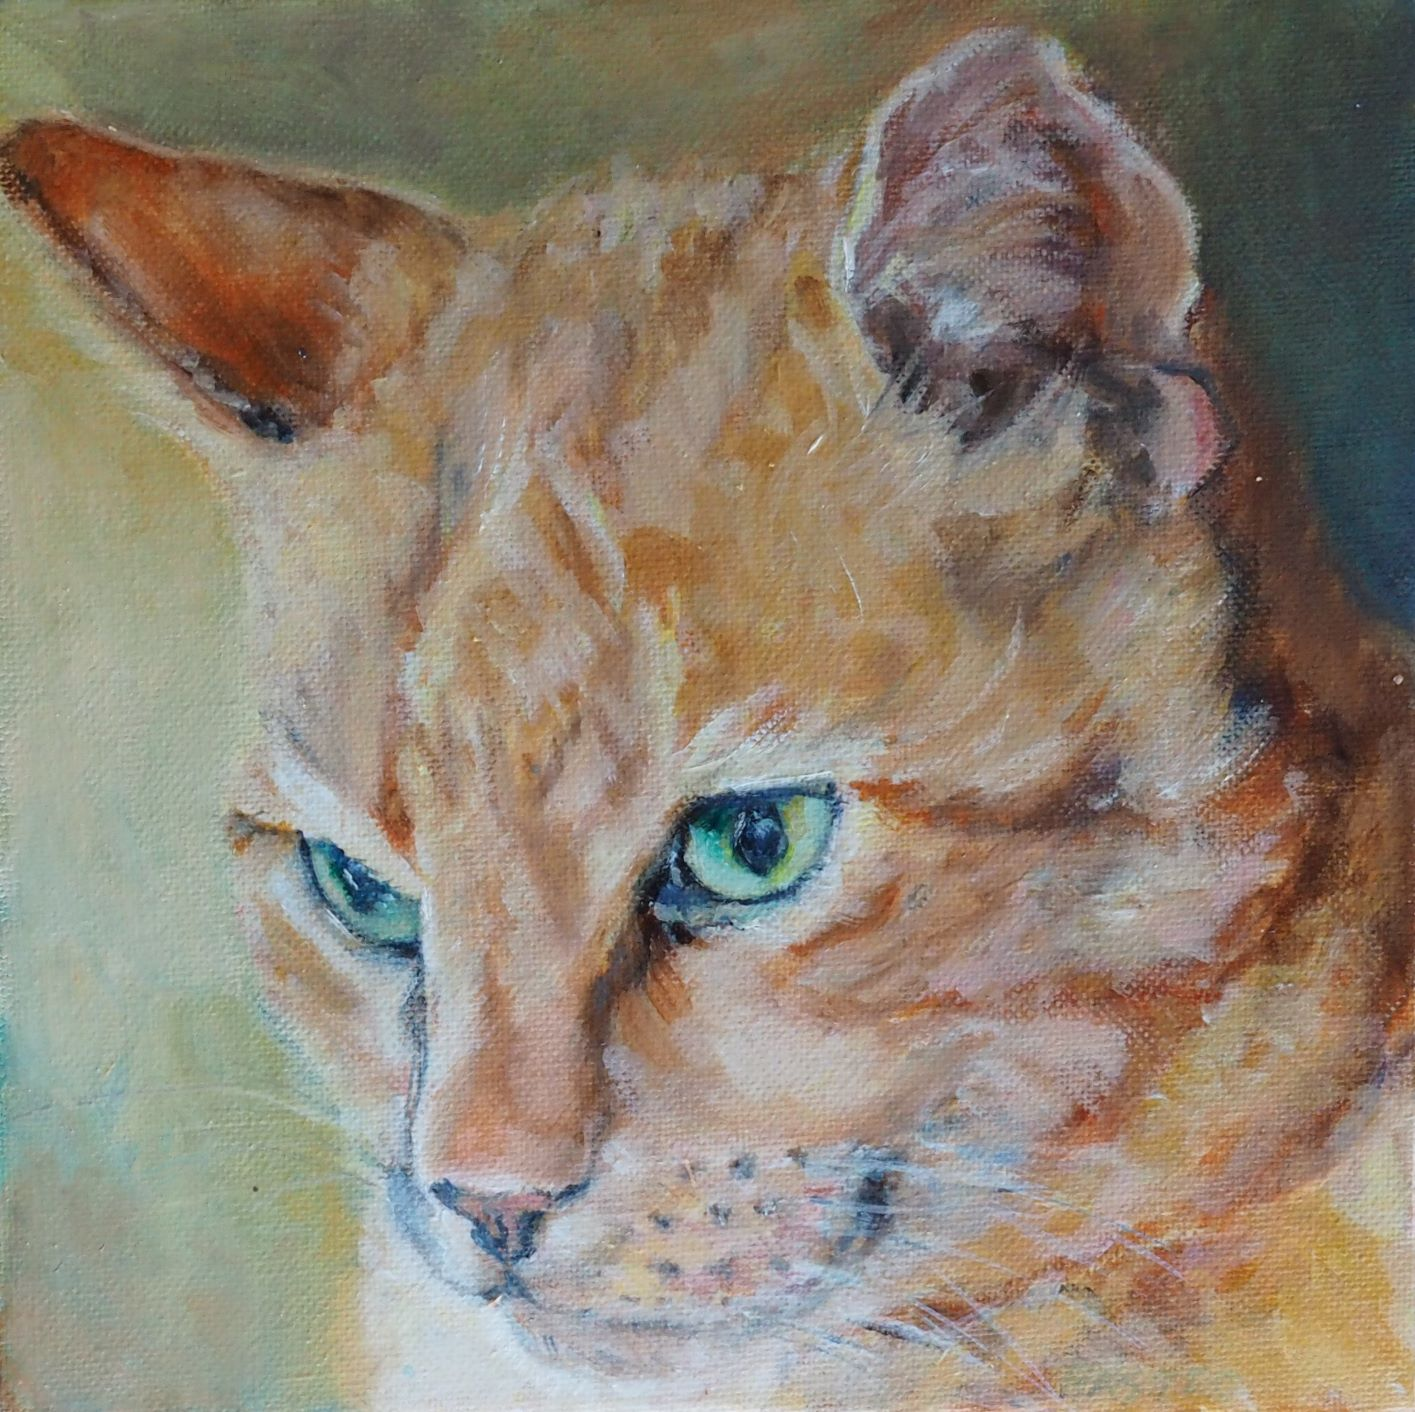 CAT PAINTING. GINGER TABBY BY OPAL PASTRO ART